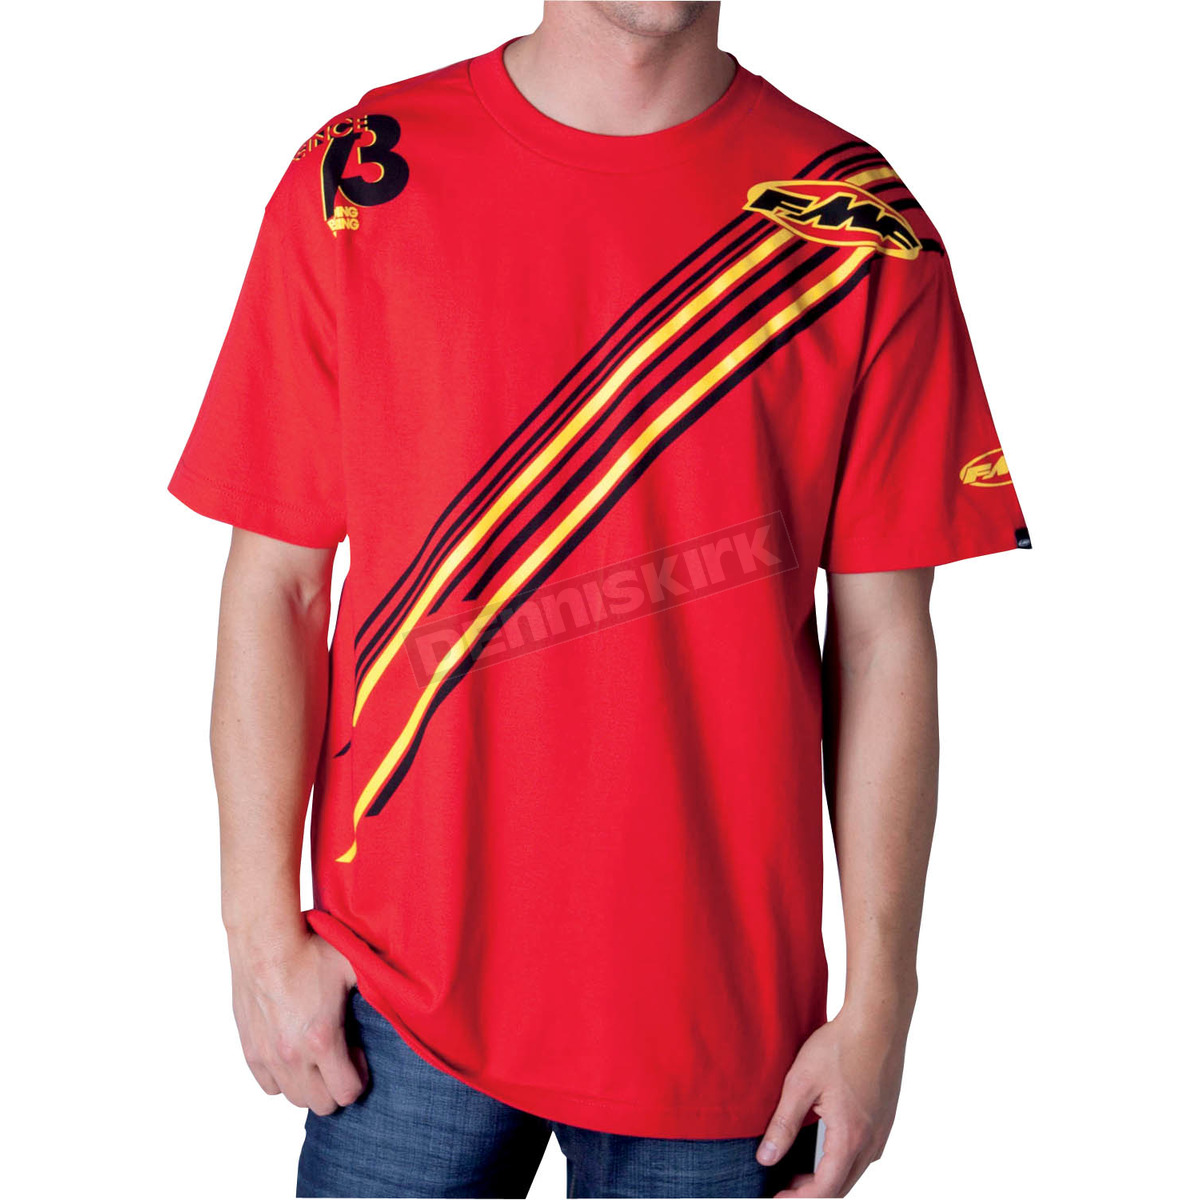 Fmf cardinal red race ready t shirt f421s18112redxl atv for Cardinal color t shirts